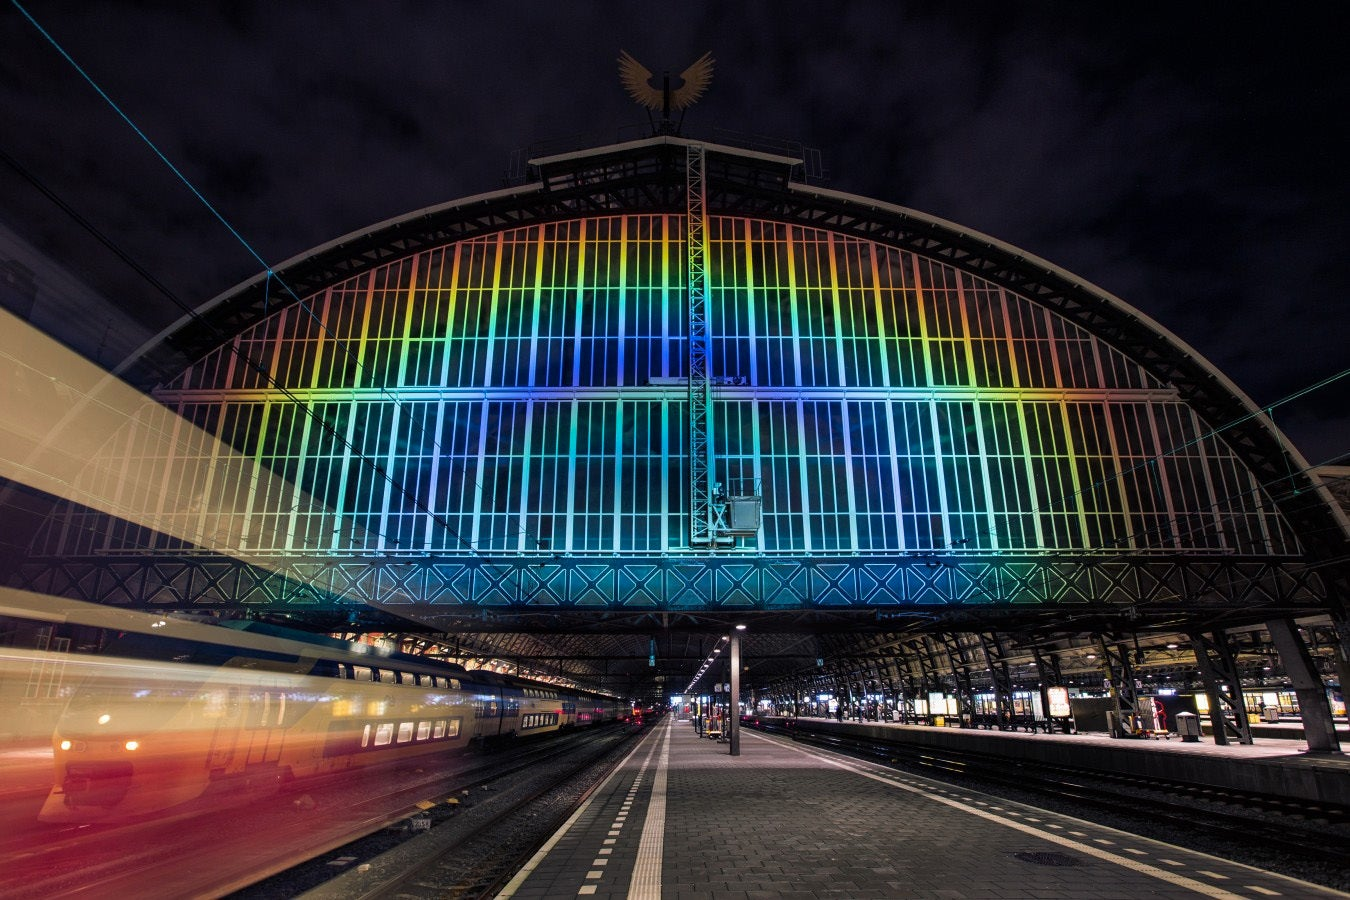 How To Turn 4,000 Watts Of White Light Into A 45-Meter-Wide Rainbow